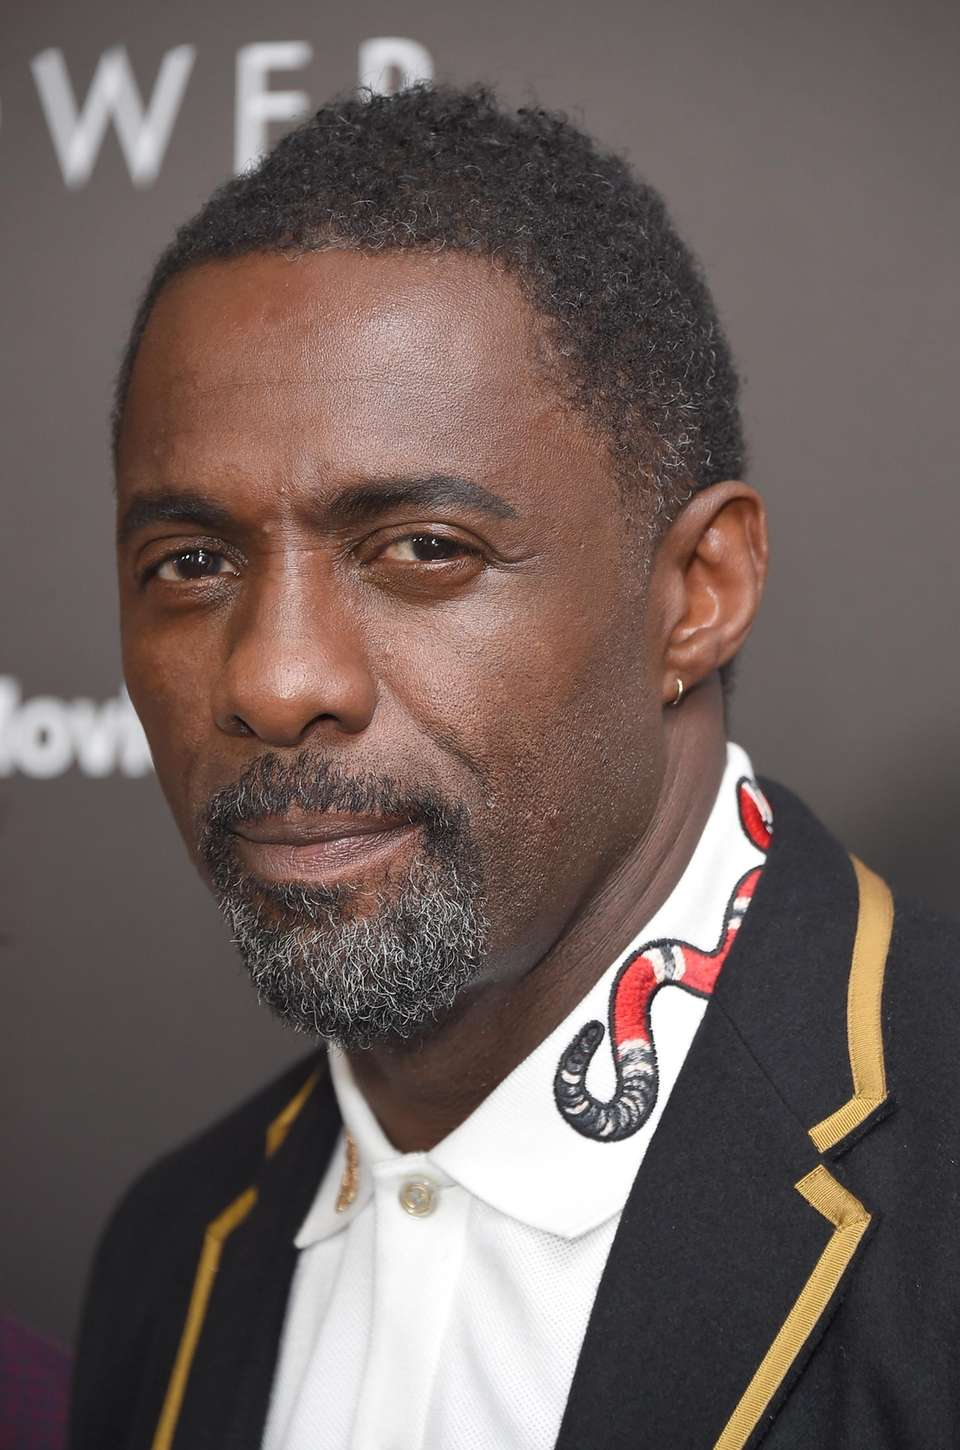 Idris Elba attends the New York premiere of